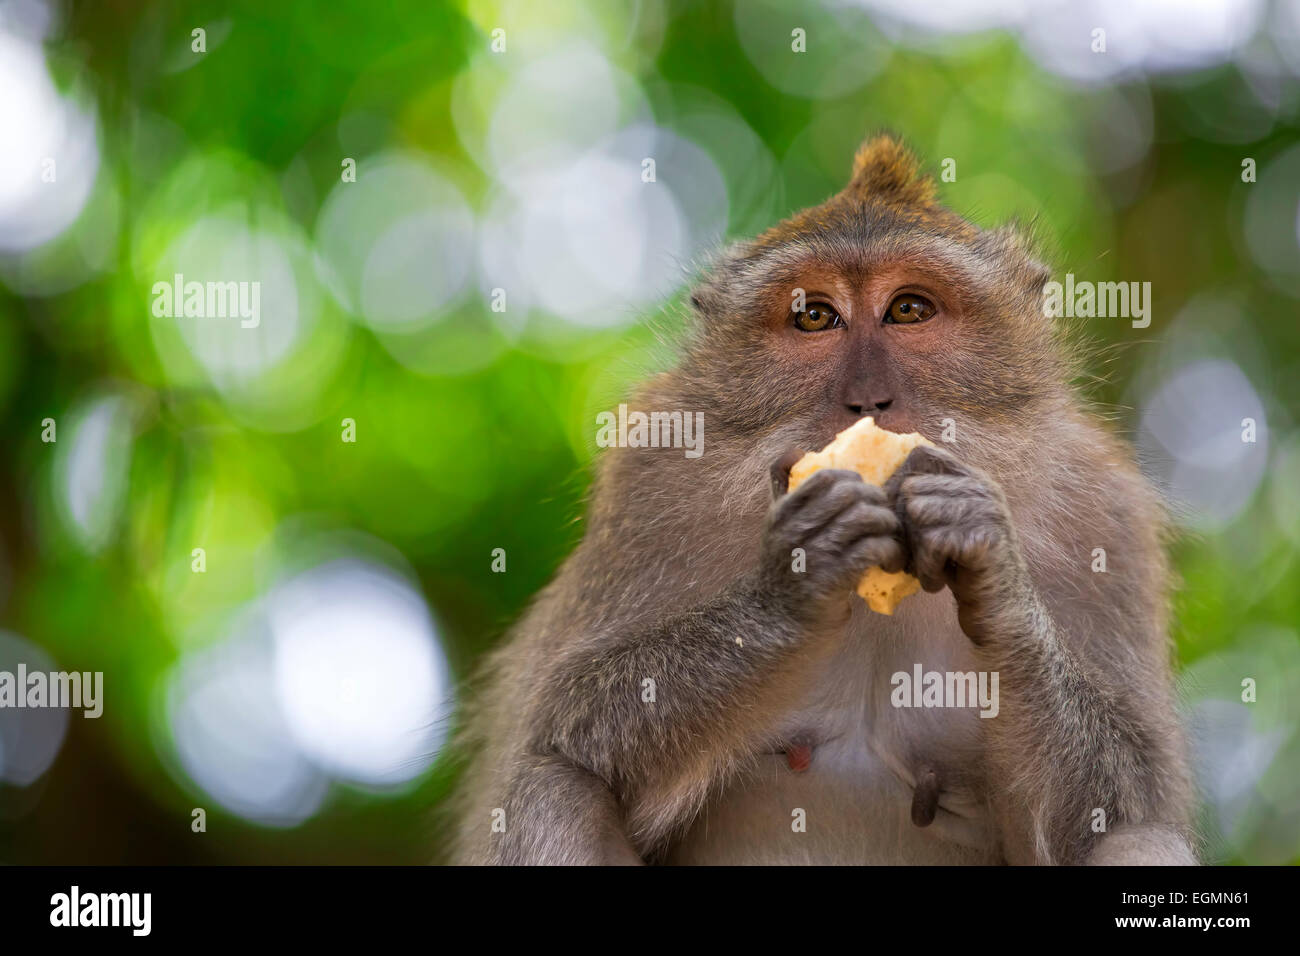 Long-tailed Macaque Monkey - Stock Image